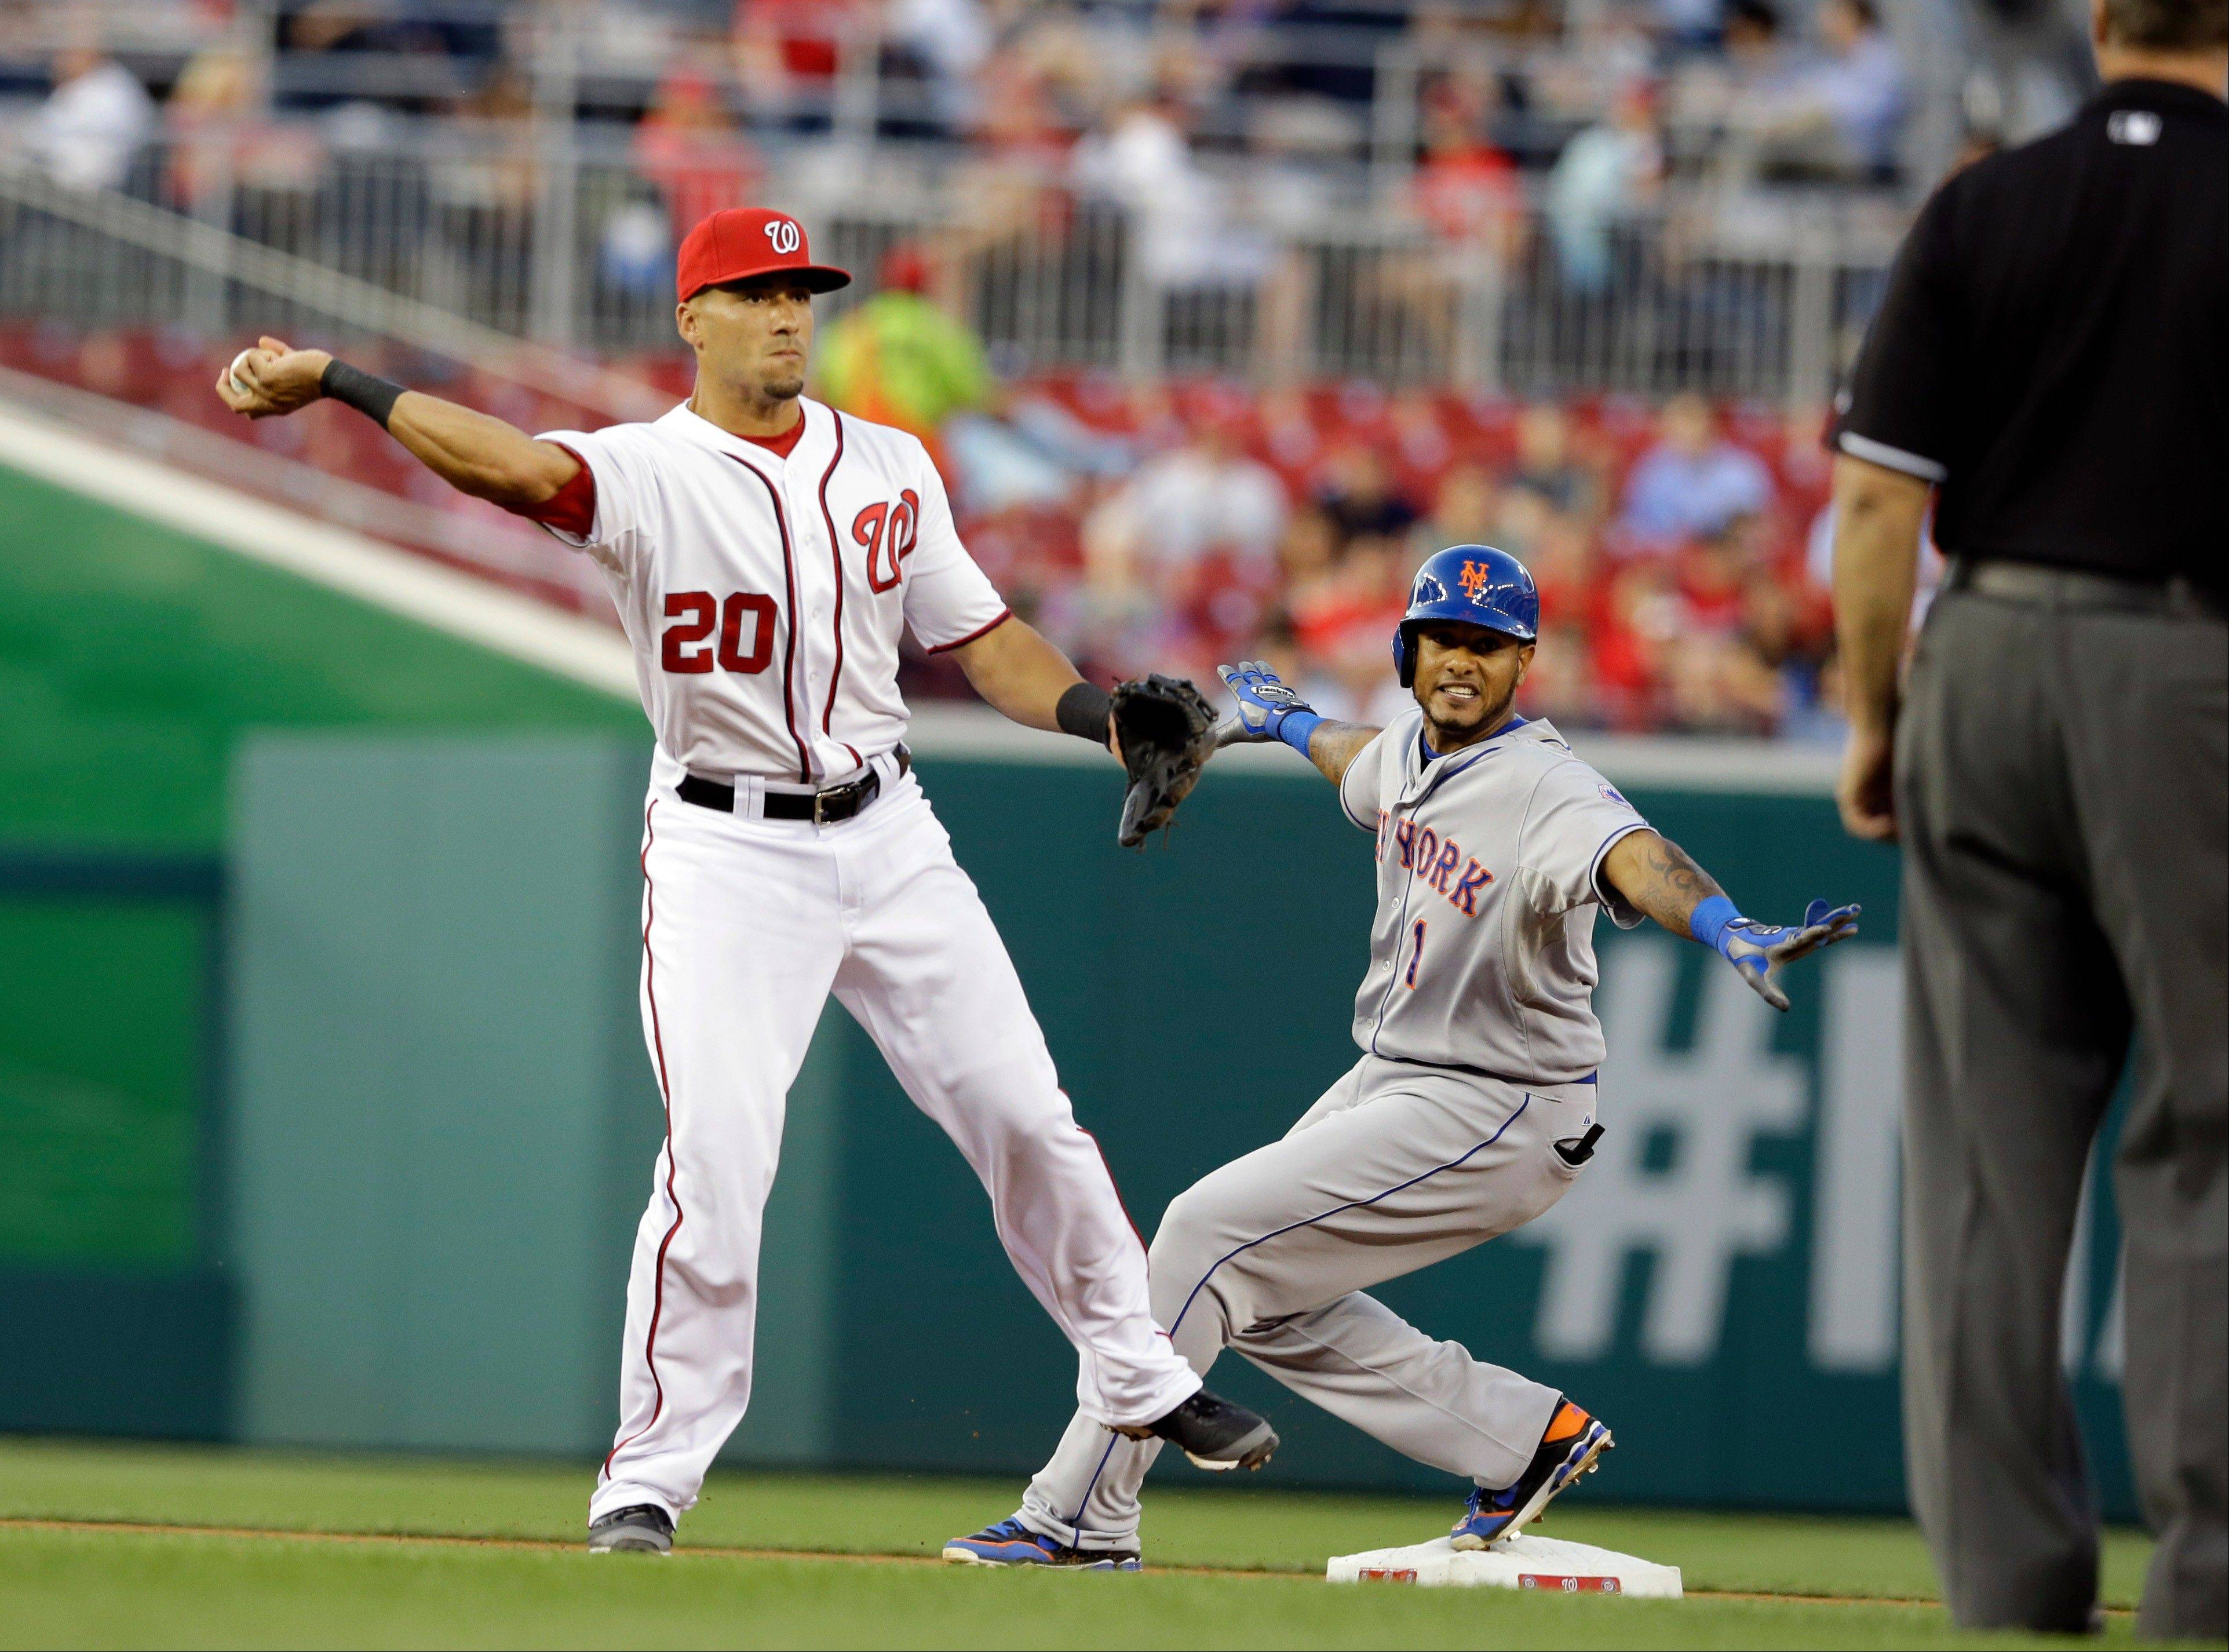 Washington Nationals shortstop Ian Desmond (20) checks his throw to first as New York Mets' Jordany Valdespin (1) is safe at second during the fifth inning of a baseball game at Nationals Park Tuesday in Washington.